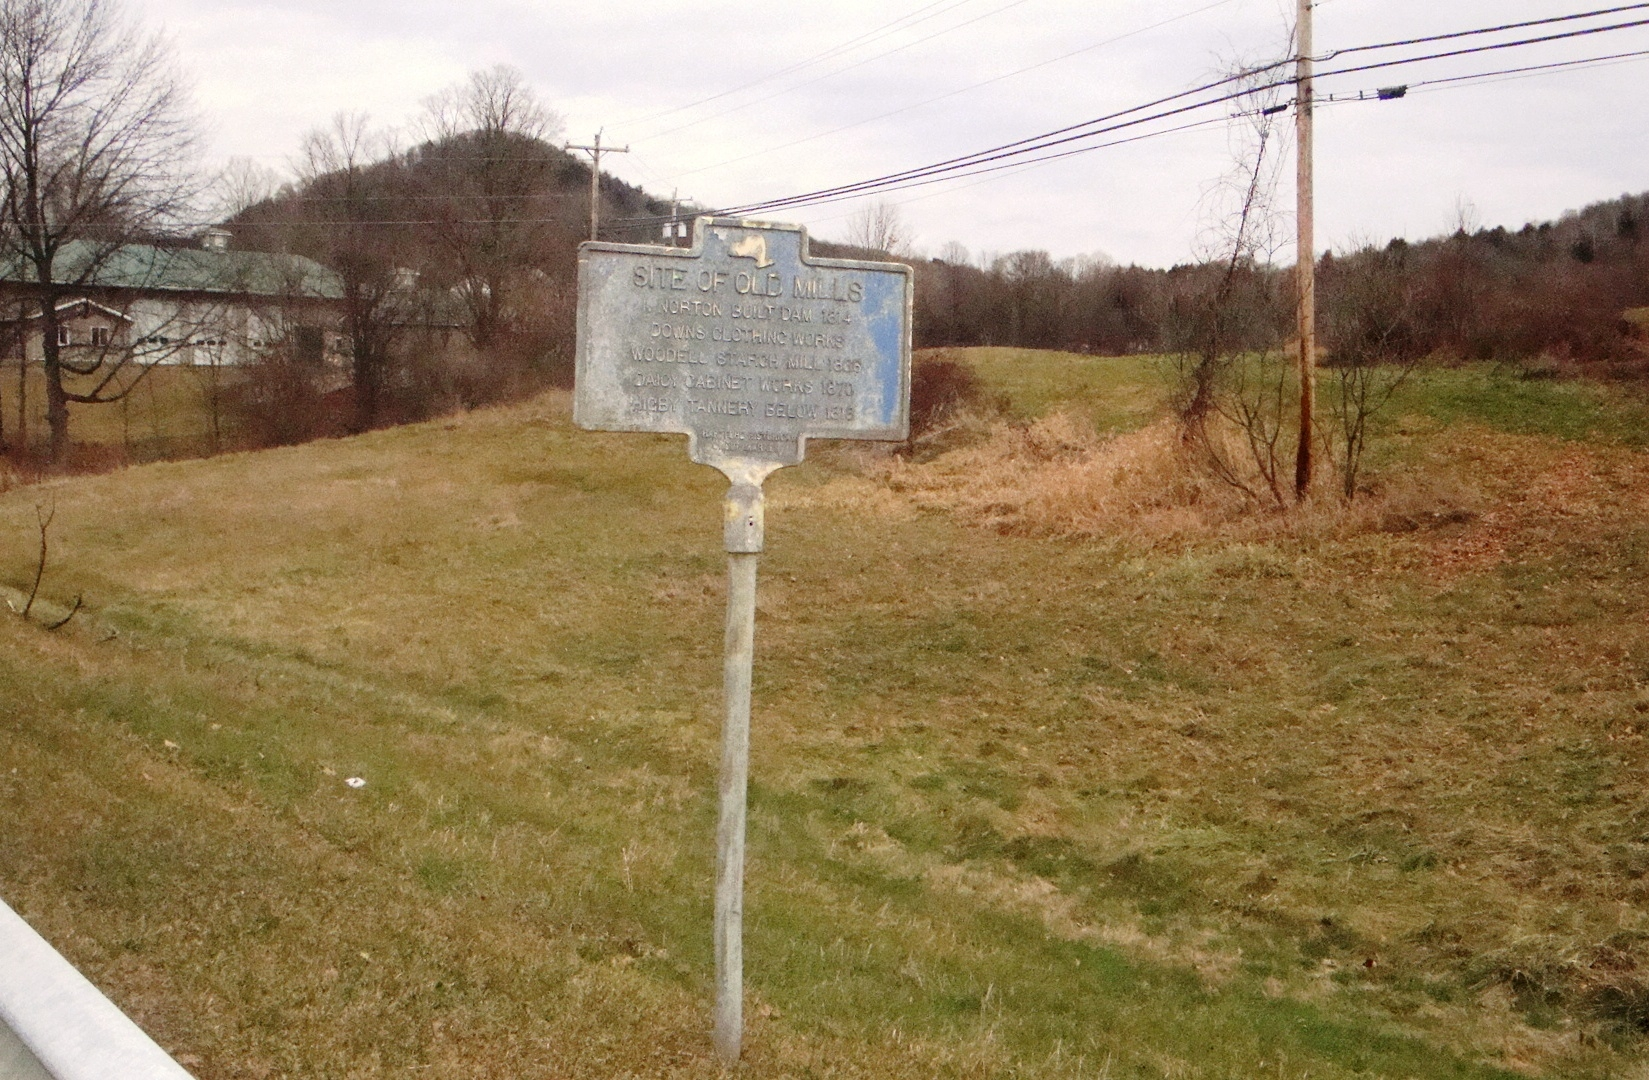 Site of Old Mills Marker